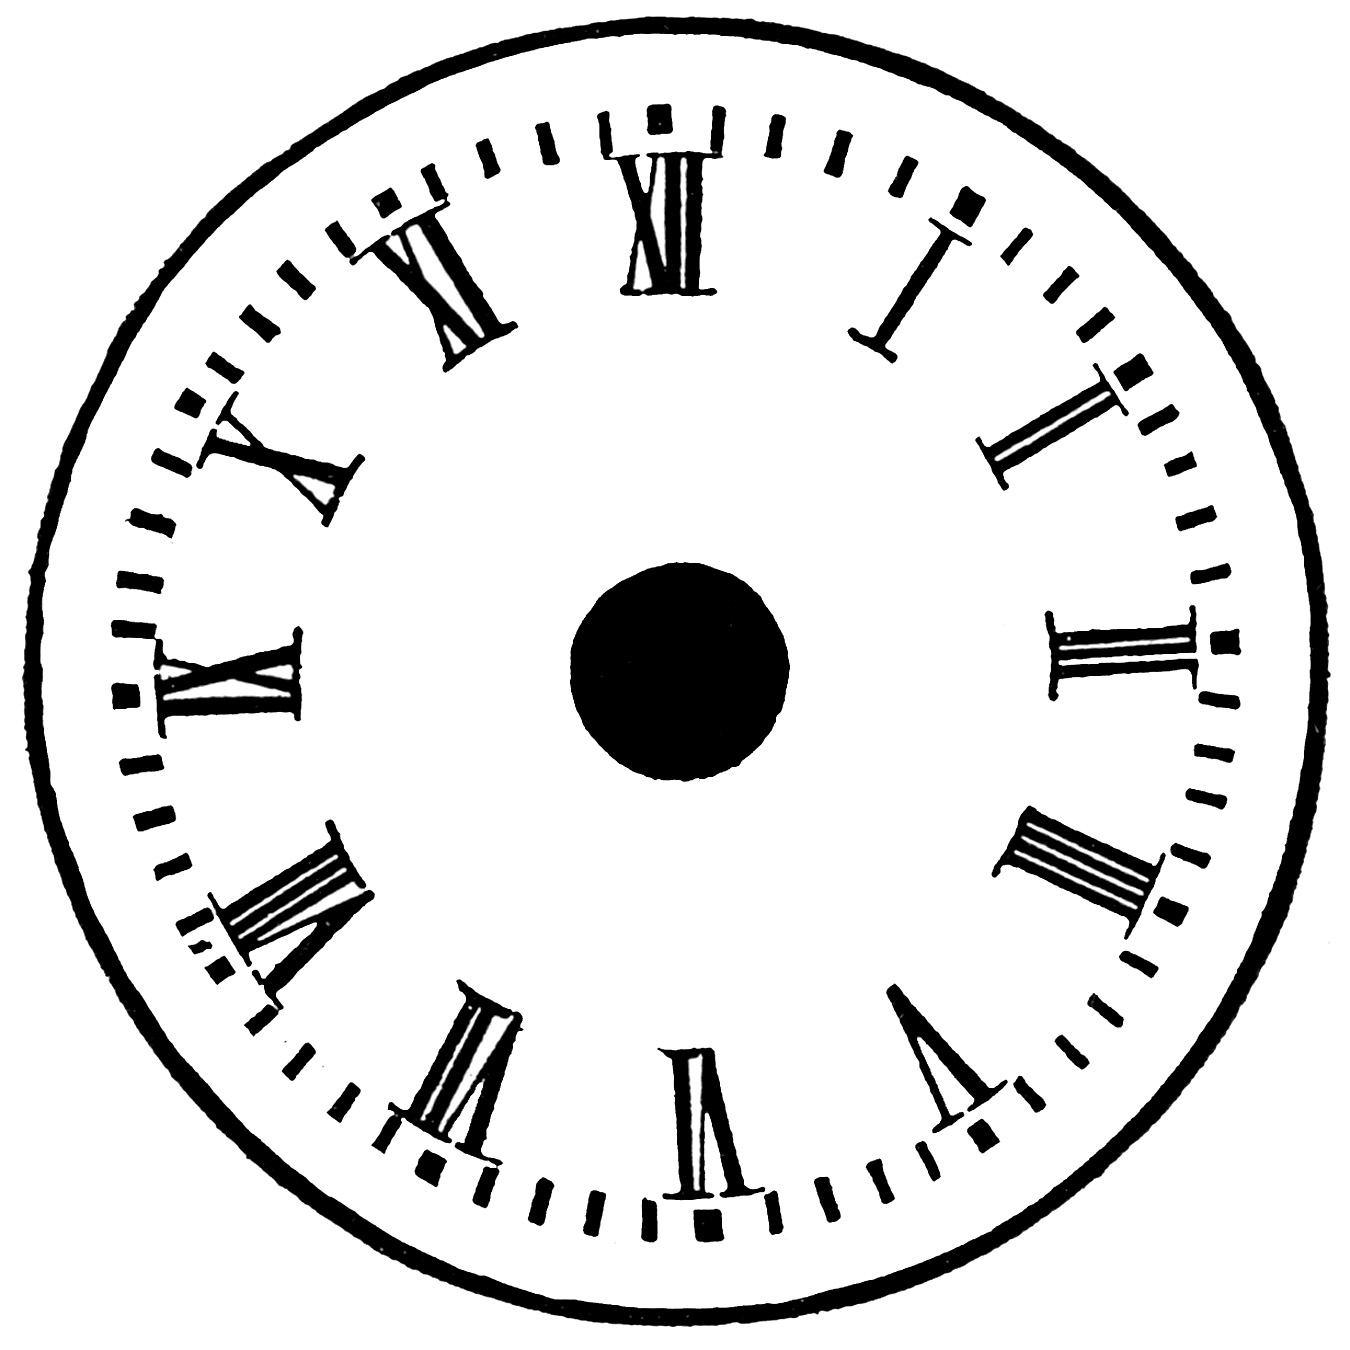 Massif image for clock printable